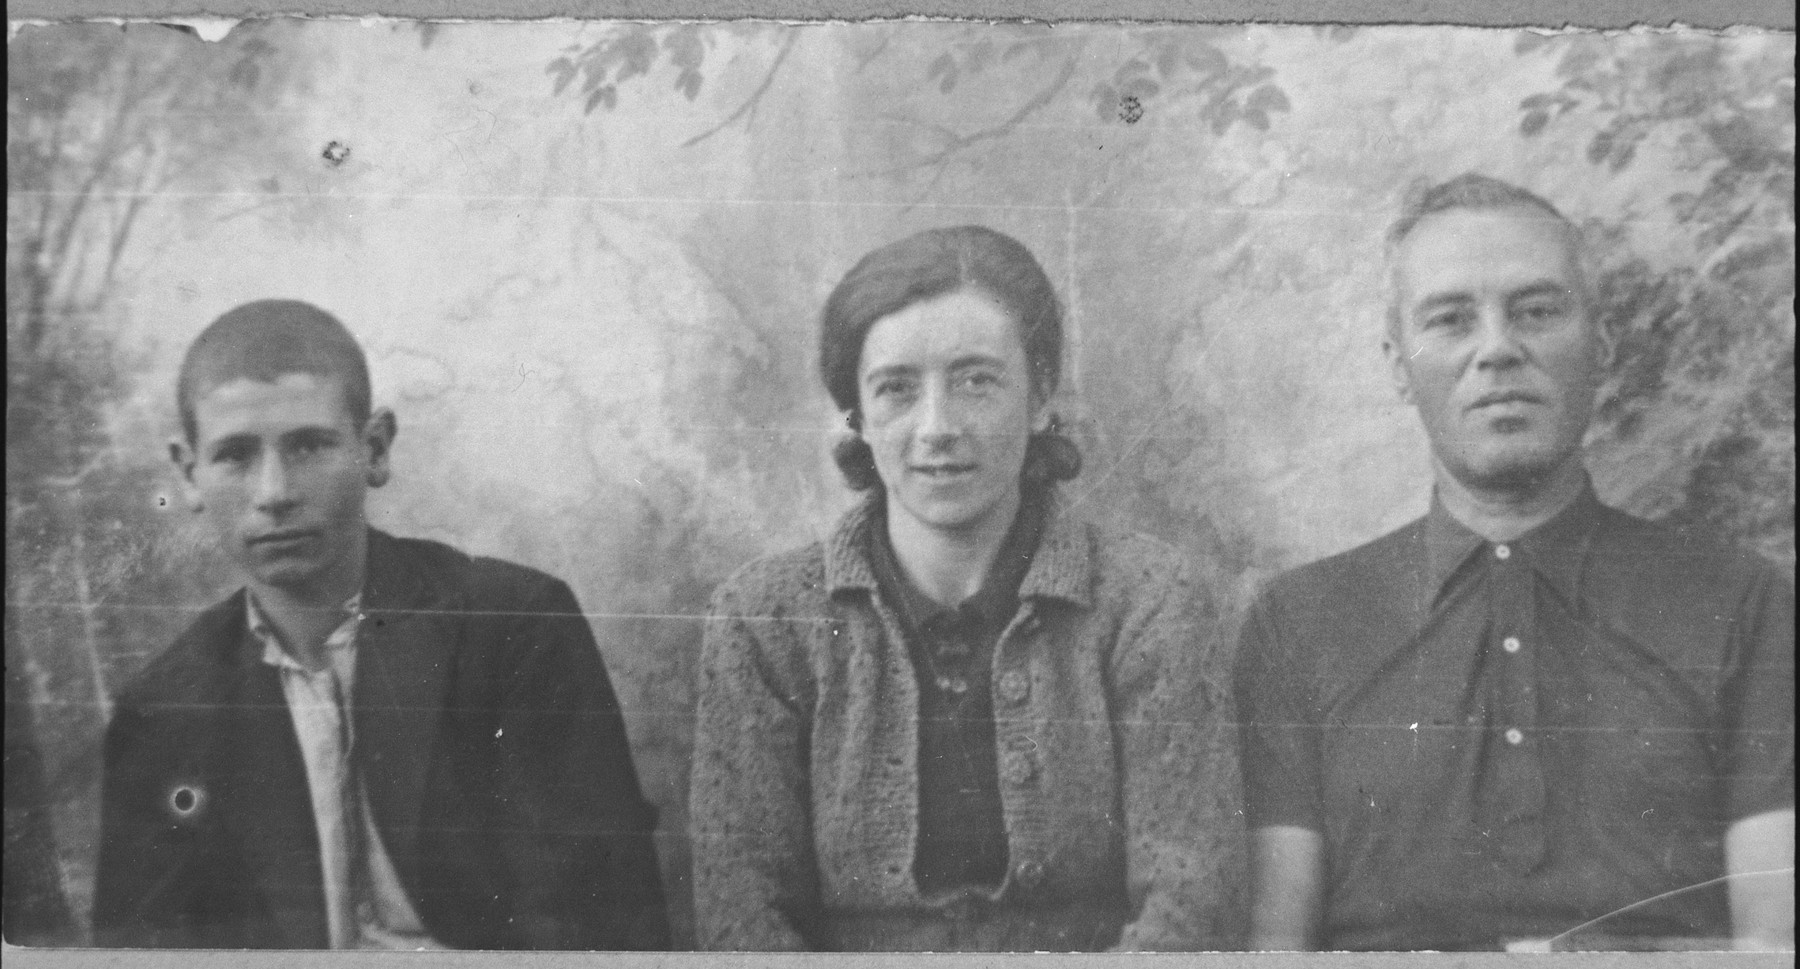 Portrait of Mayo Aroesti, son of Mishulam Aroesti, his wife, Vida, and his son, Edy.  Edy was a student.  They lived at Dr. Raisa 141 in Bitola.